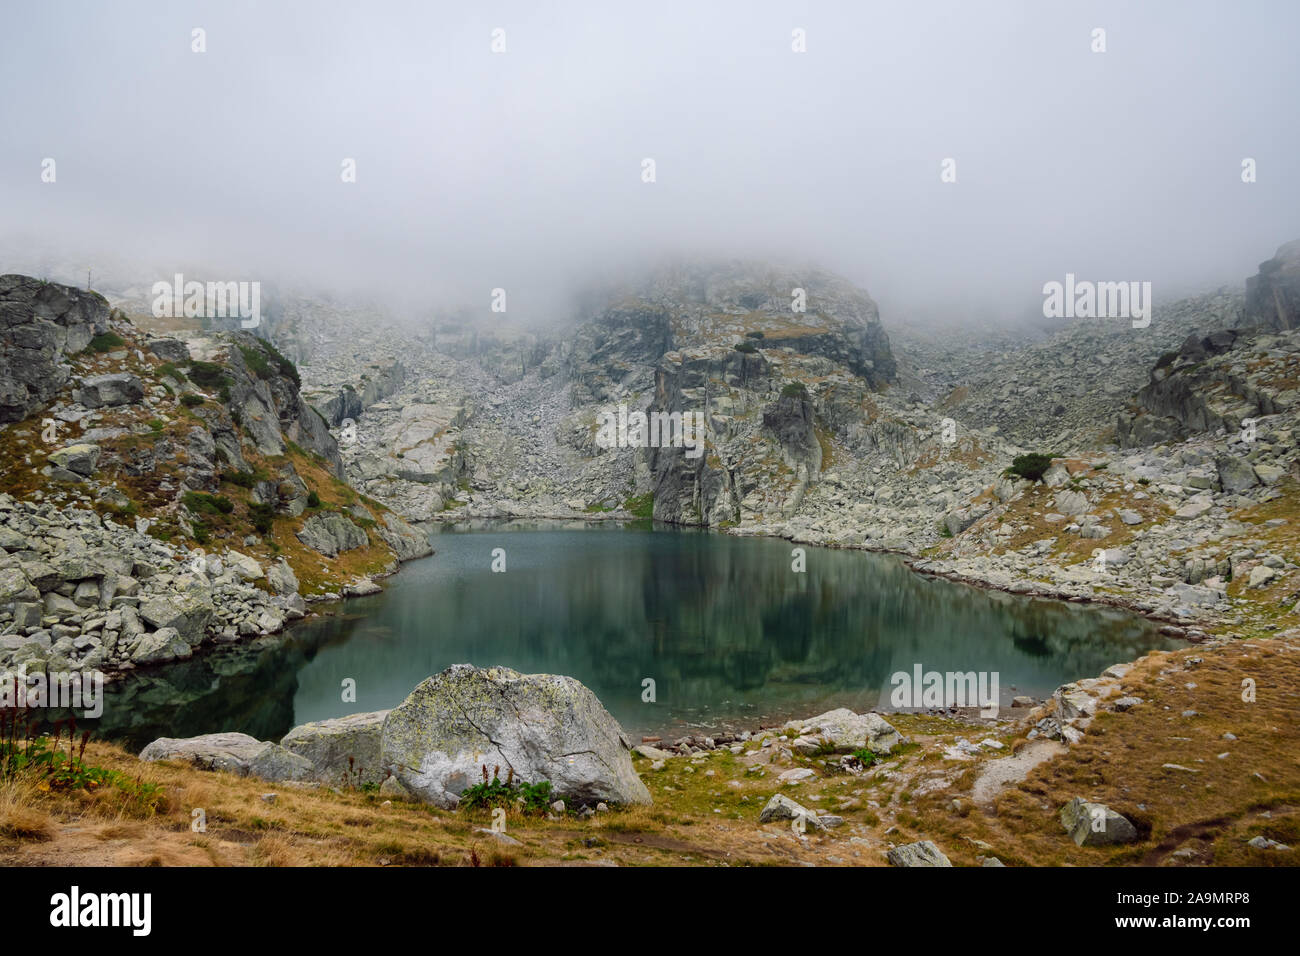 View of a beautiful high mountain lake with calm water surrounded by foggy rocky shore. The Scary Lake, Rila National Park, Bulgaria. Stock Photo